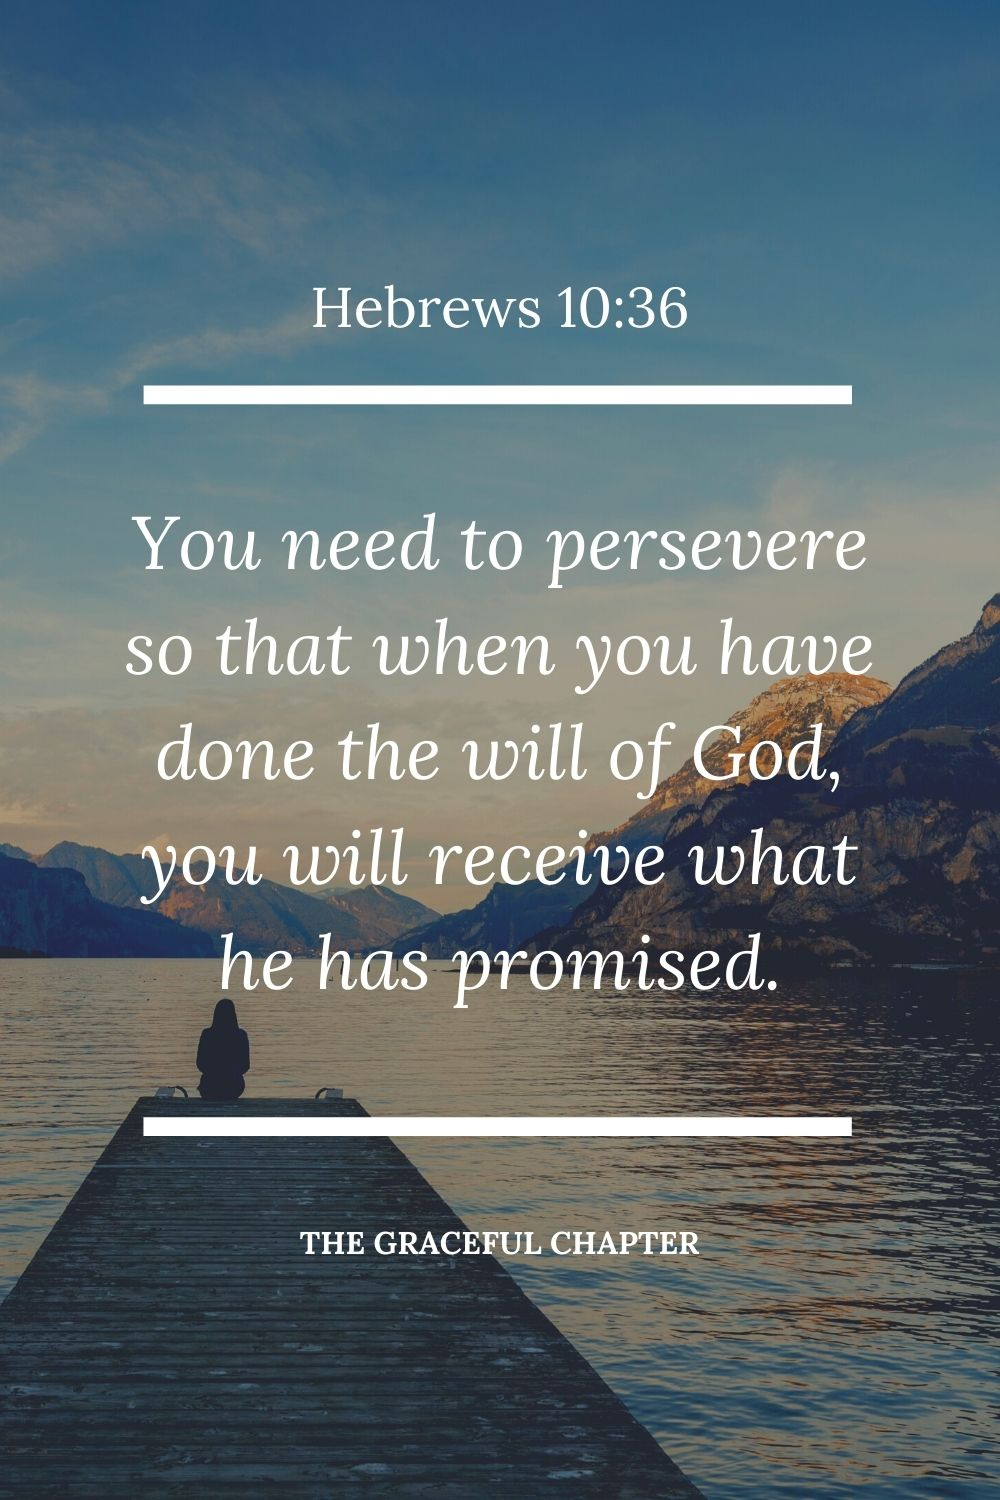 You need to persevere so that when you have done the will of God, you will receive what he has promised. Hebrews 10:36